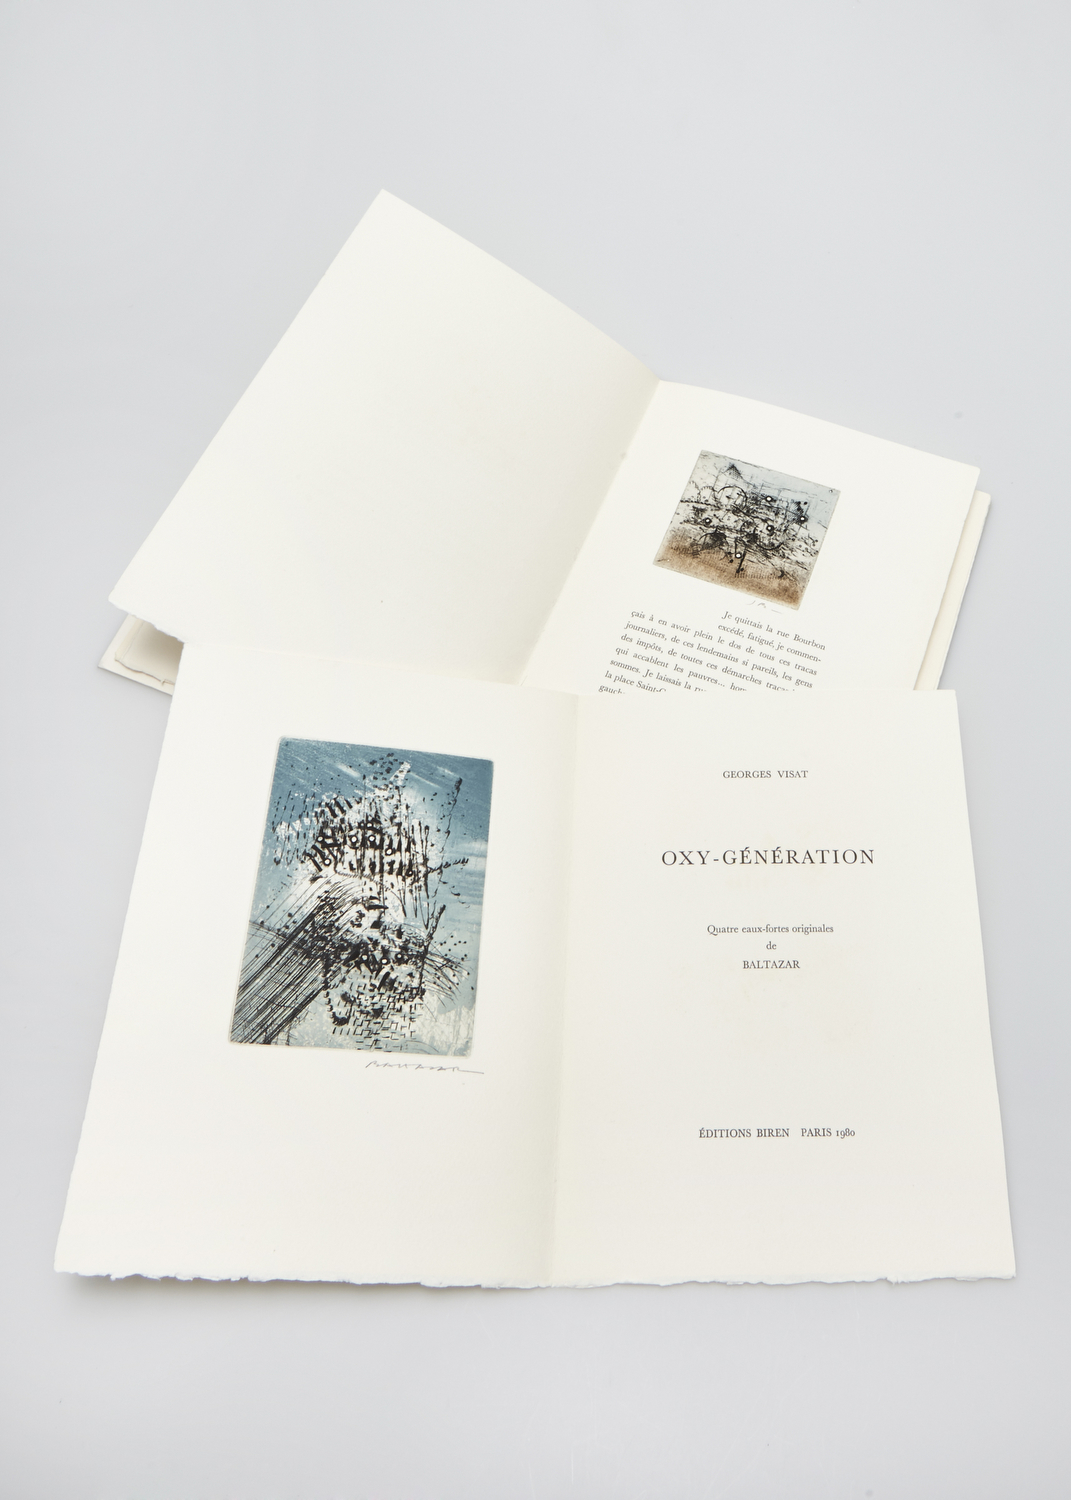 Oxy-Génération    Text by Georges Visat and engraving by Julius Baltazar  1980 | 27 x 19 cm | eau forte and typography | 60 prints | editor Biren